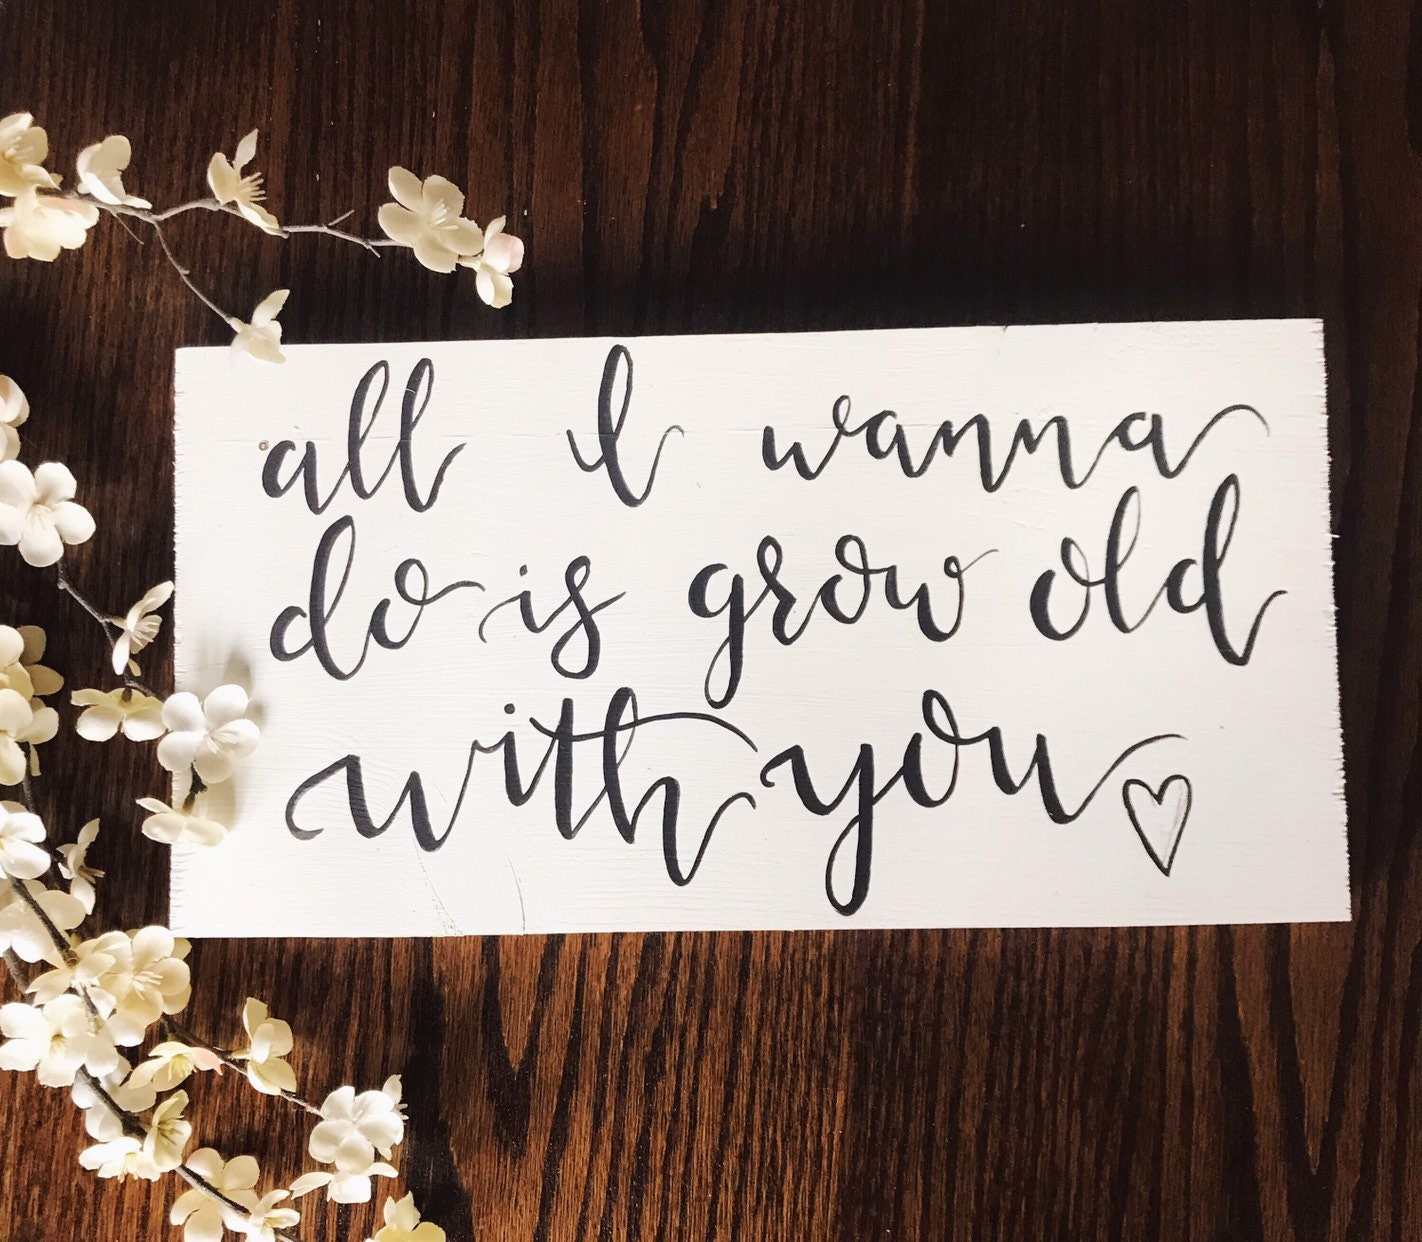 Wedding Singer Song.Grow Old With You Wood Sign Wedding Singer Songs Song Lyrics The Wedding Singer Gift Anniversary Wedding